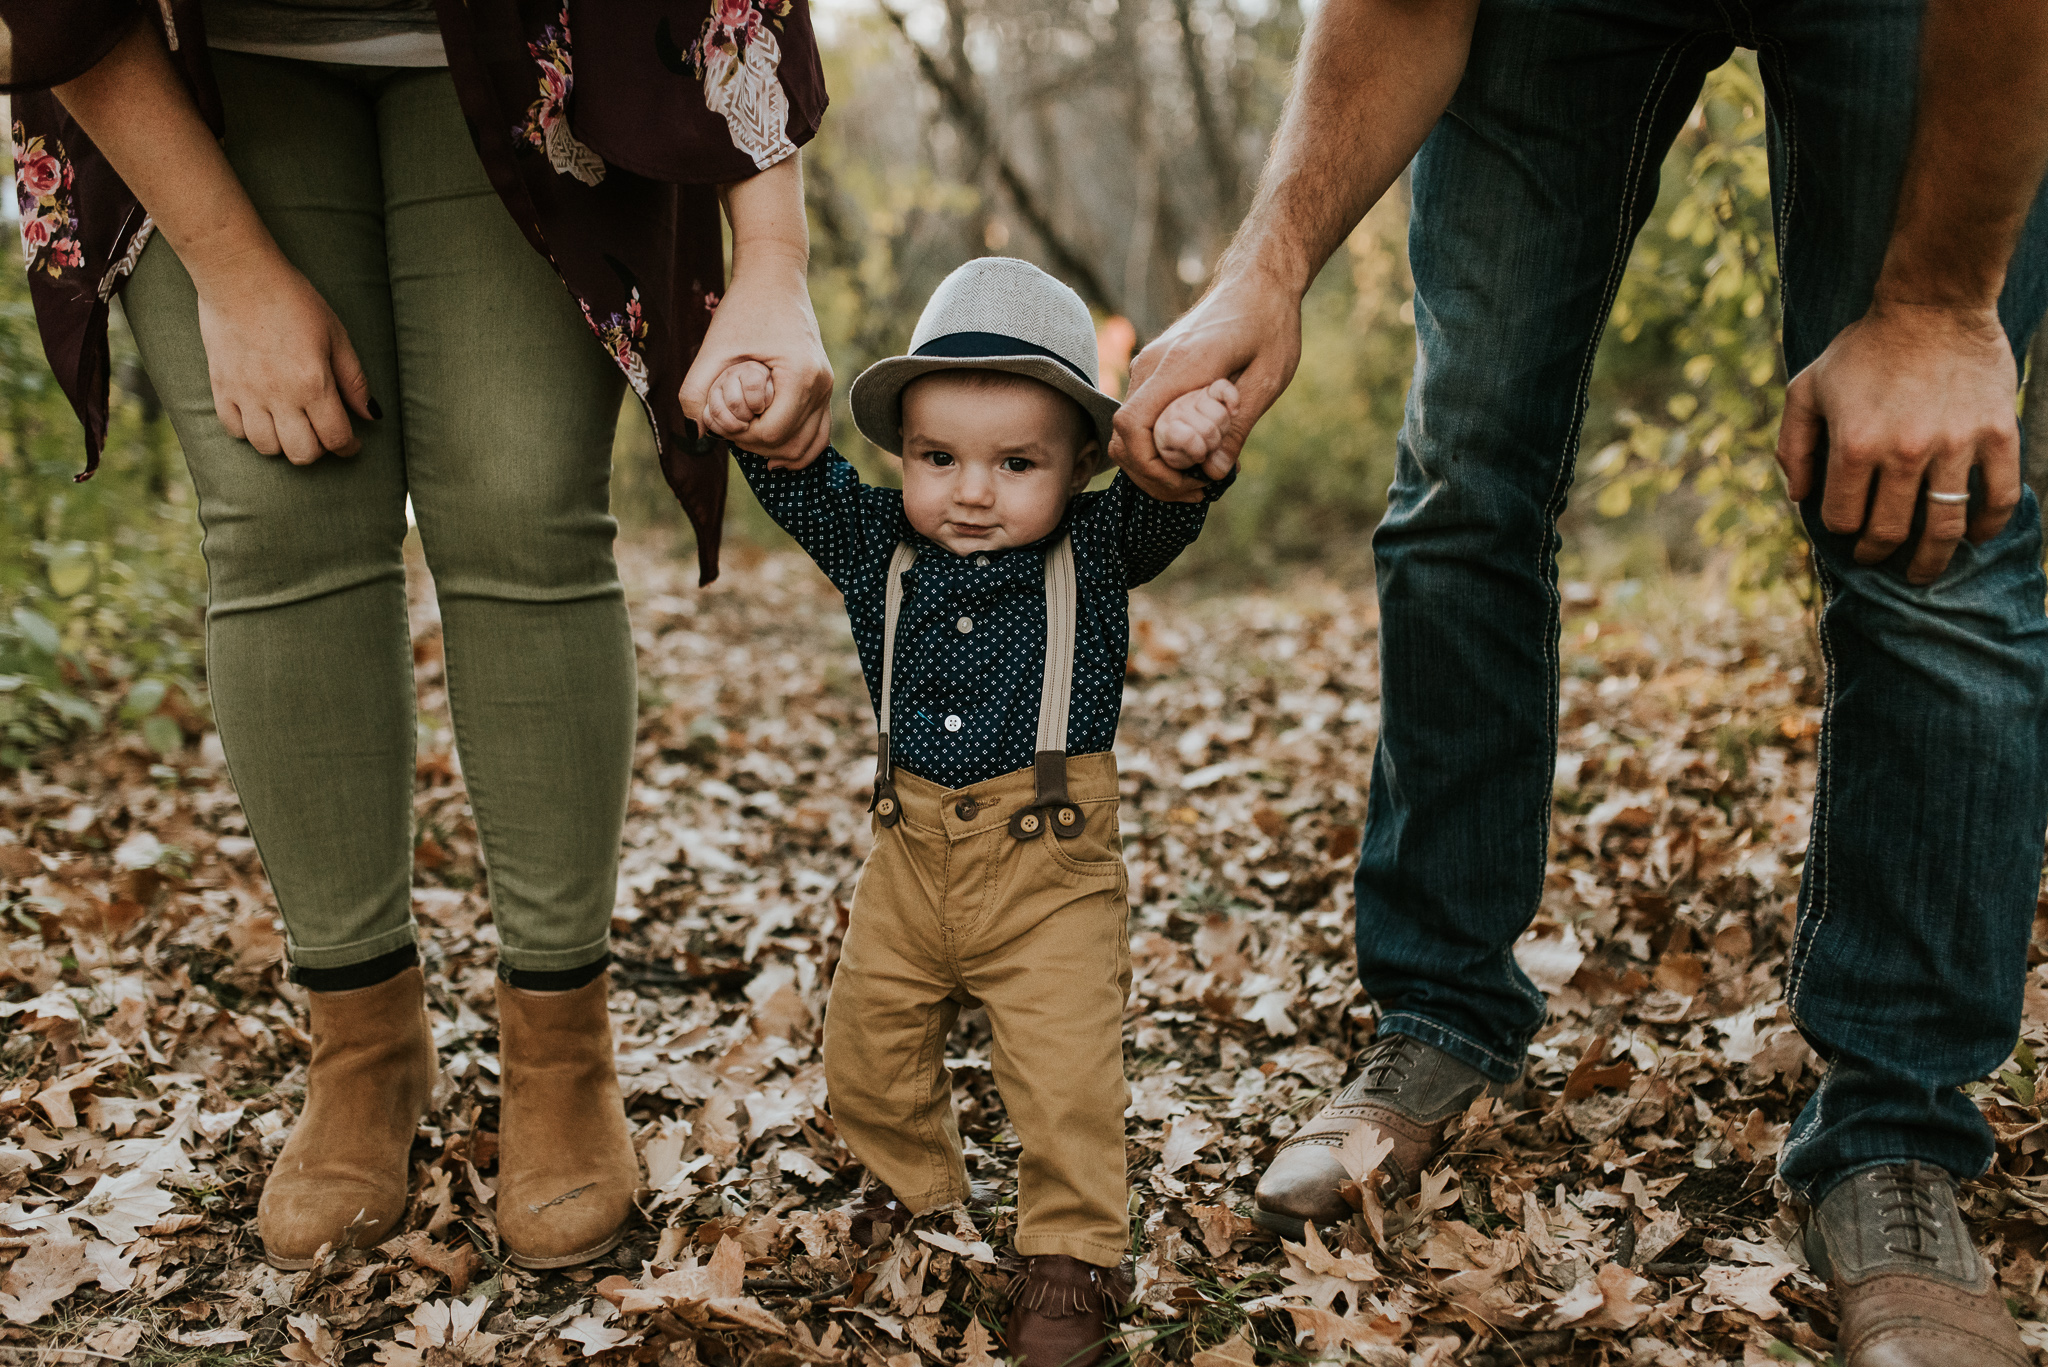 fall-family-picture-inspiration-outfit-kids-6.jpg